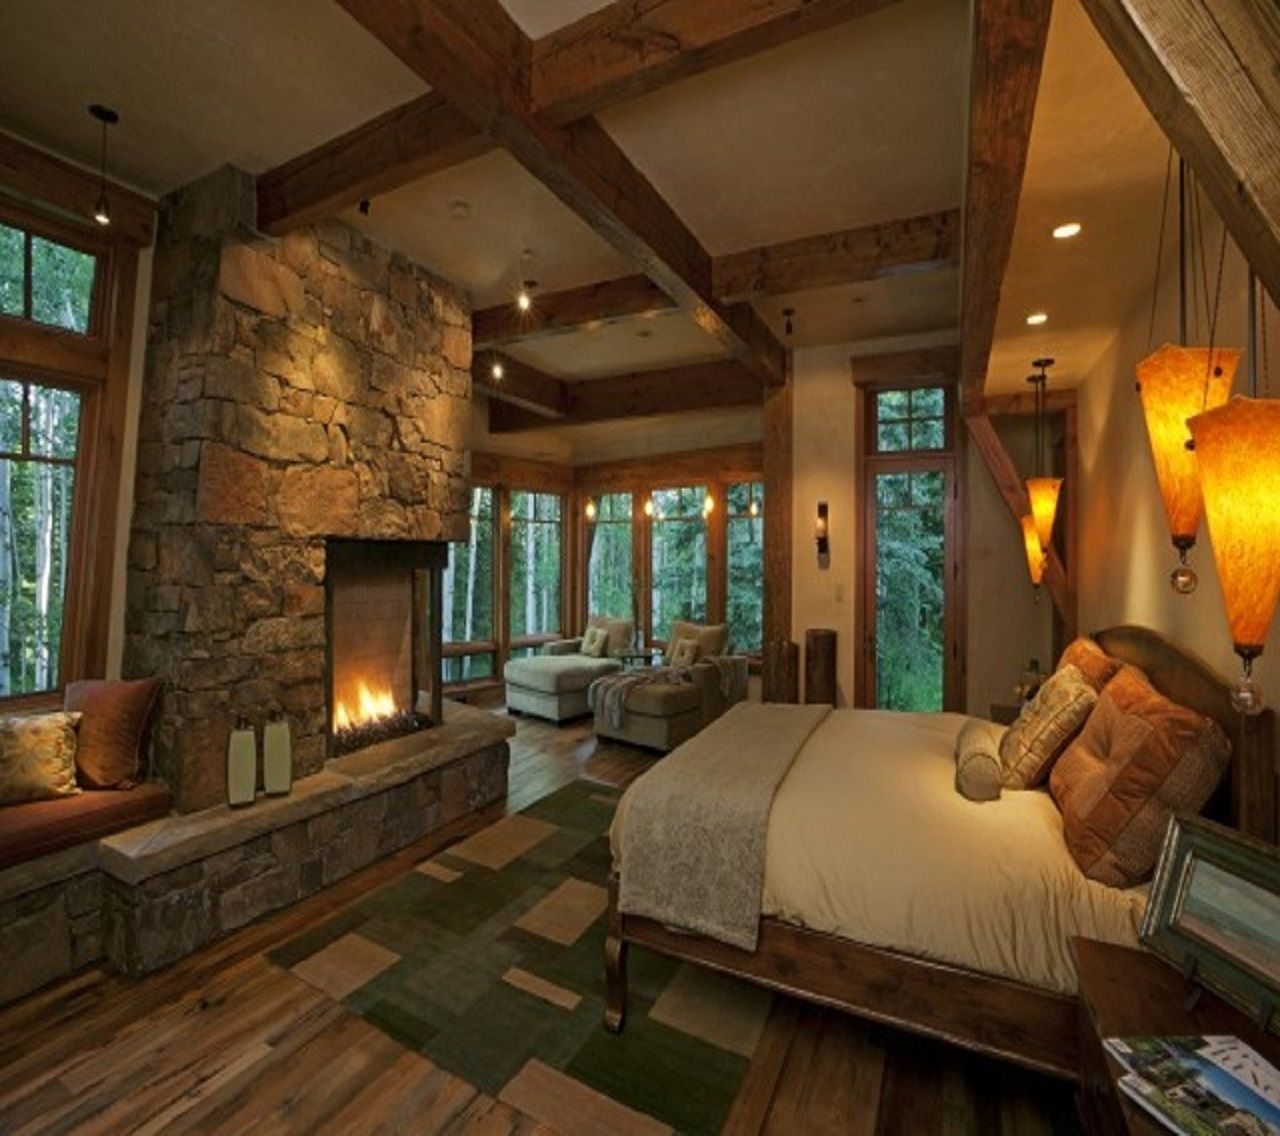 25 Bedroom Design Ideas For Your Home: INT. LOGCABIN BEDROOM 1 MED #EpisodeInteractive #Episode